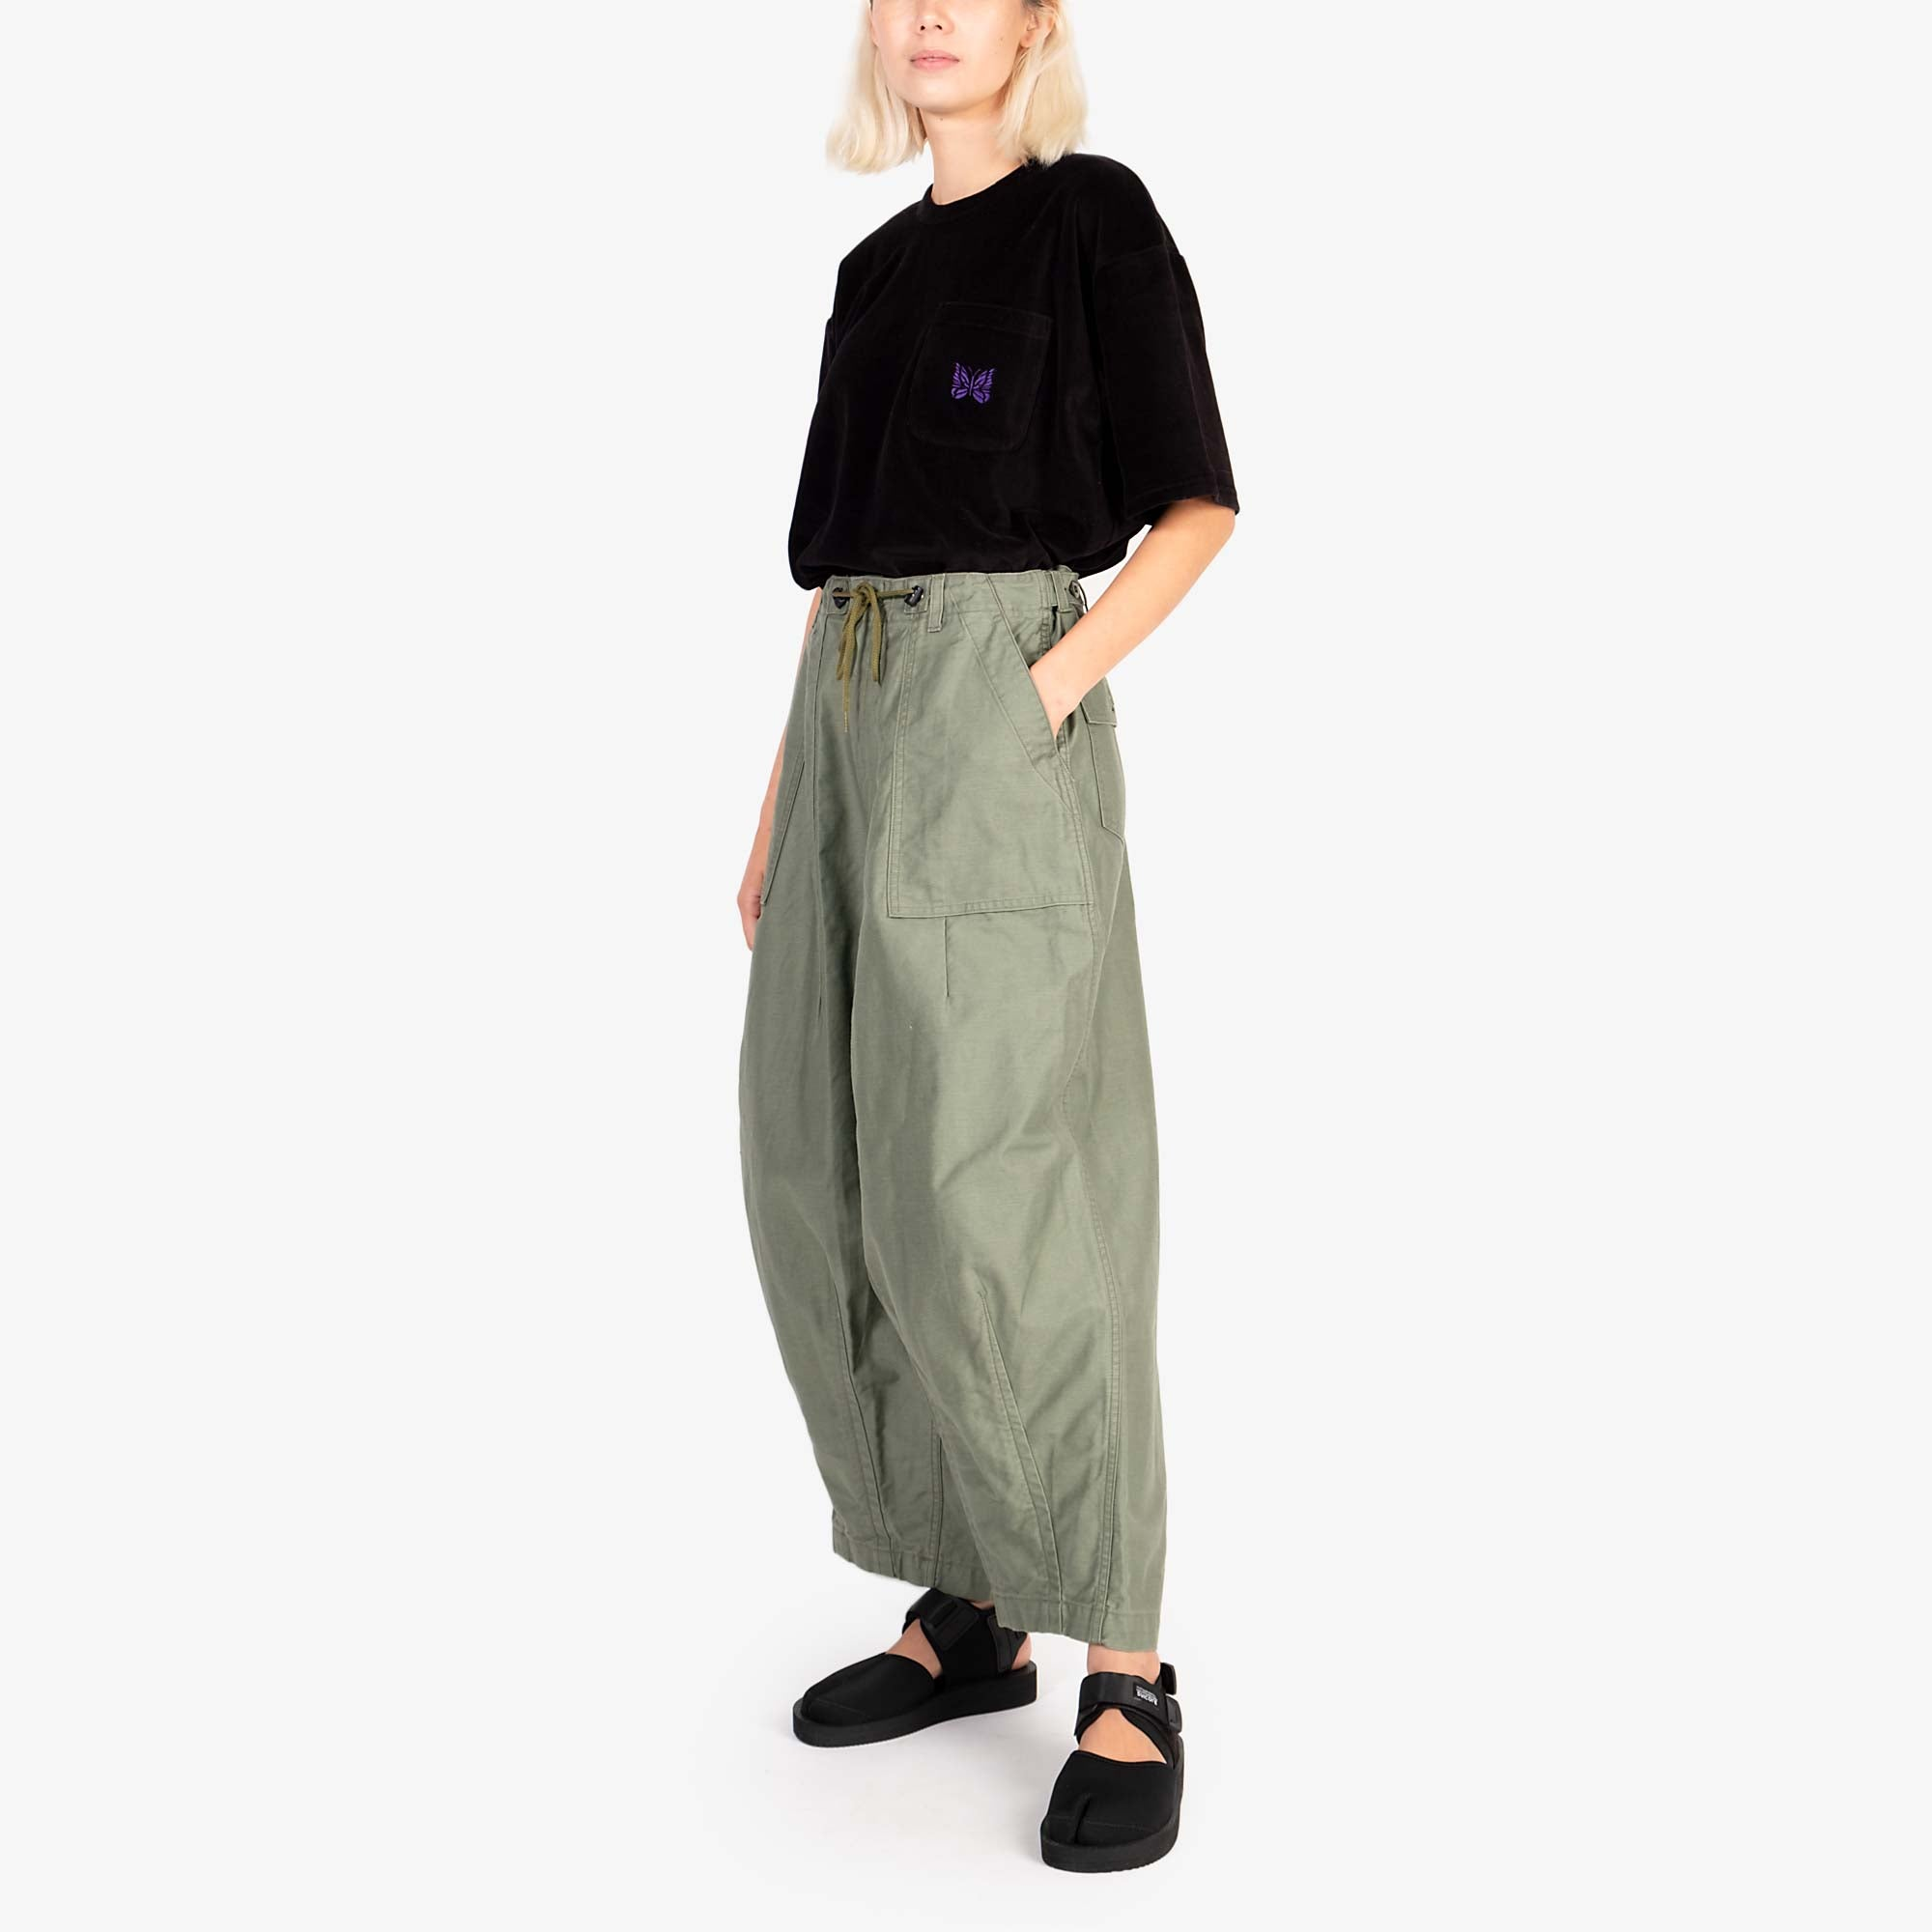 Needles W' H.D. Fatigue Pant - Olive 2